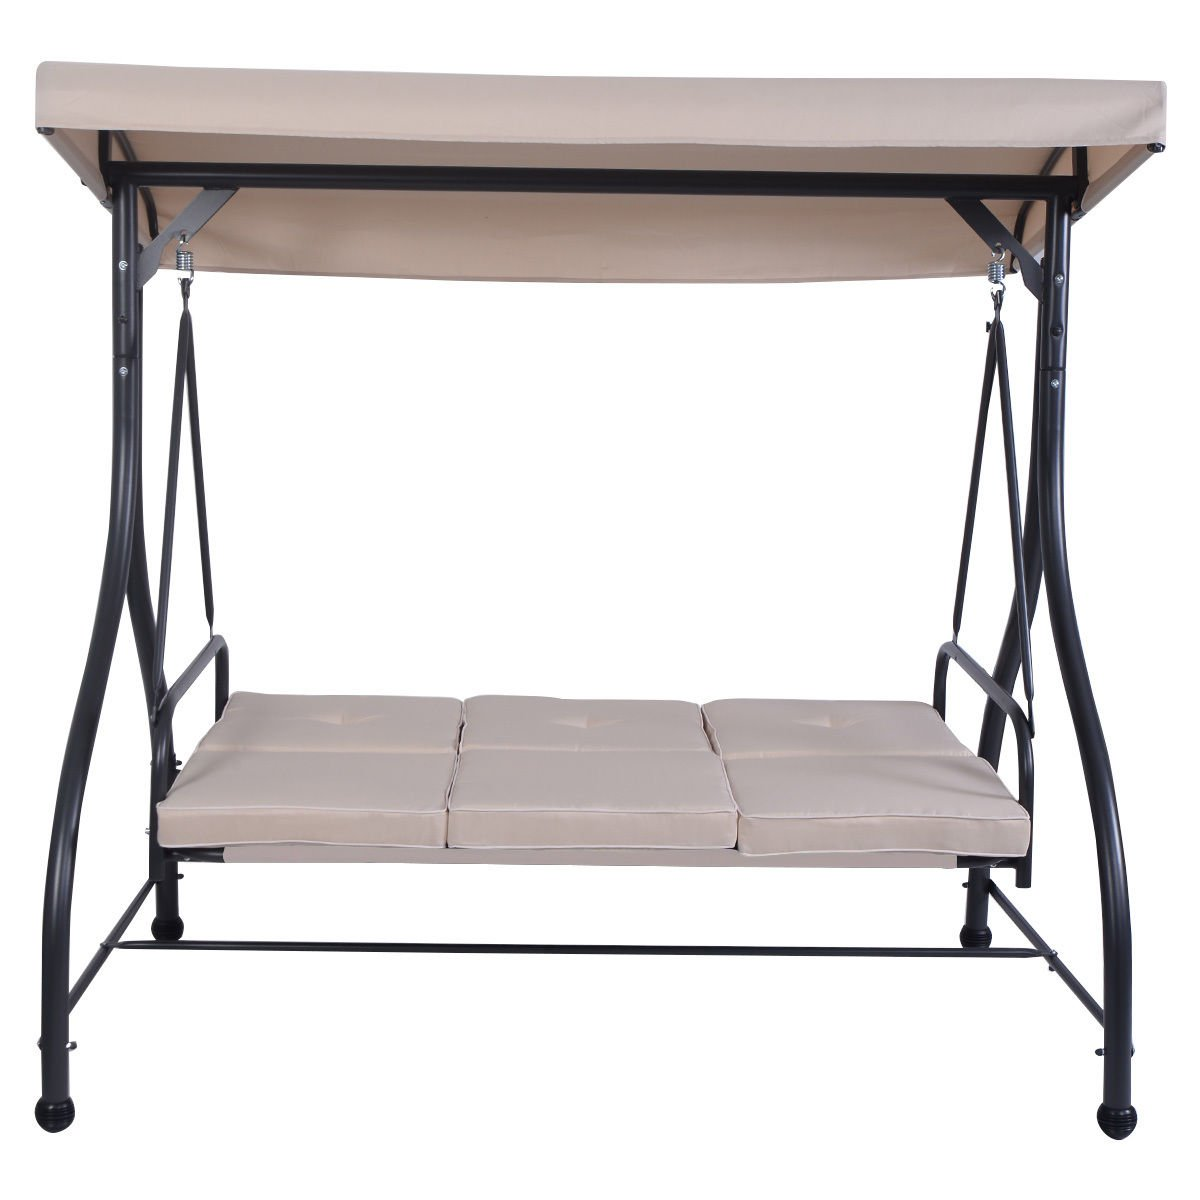 Globe House Products GHP 750-Lbs Capacity Black Frame & Beige Fabric Steel 3-Seat Swing Bench with Cushions by Globe House Products (Image #2)